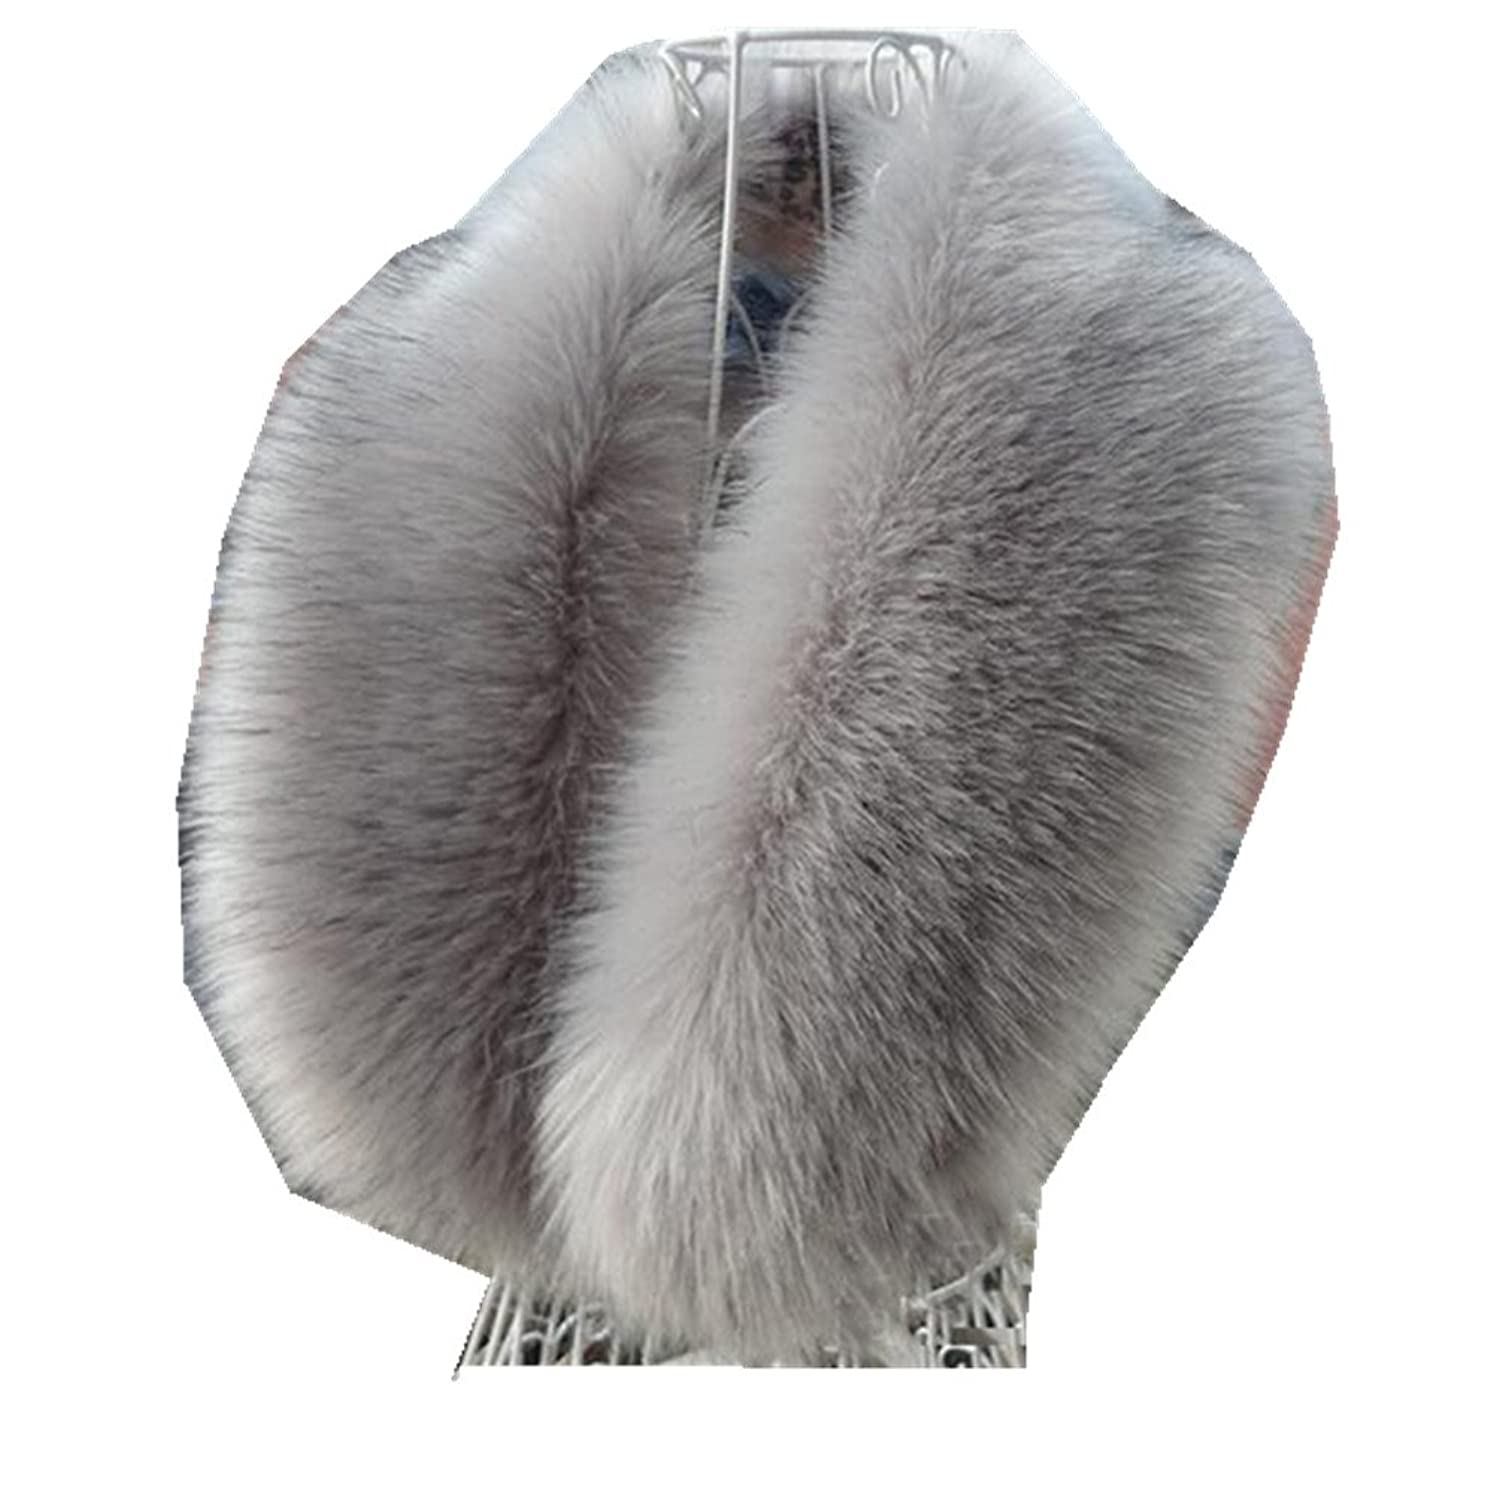 shpinmall-Fur Collar ACCESSORY レディース B016FIHXXM  ライトグレー 80-100cm